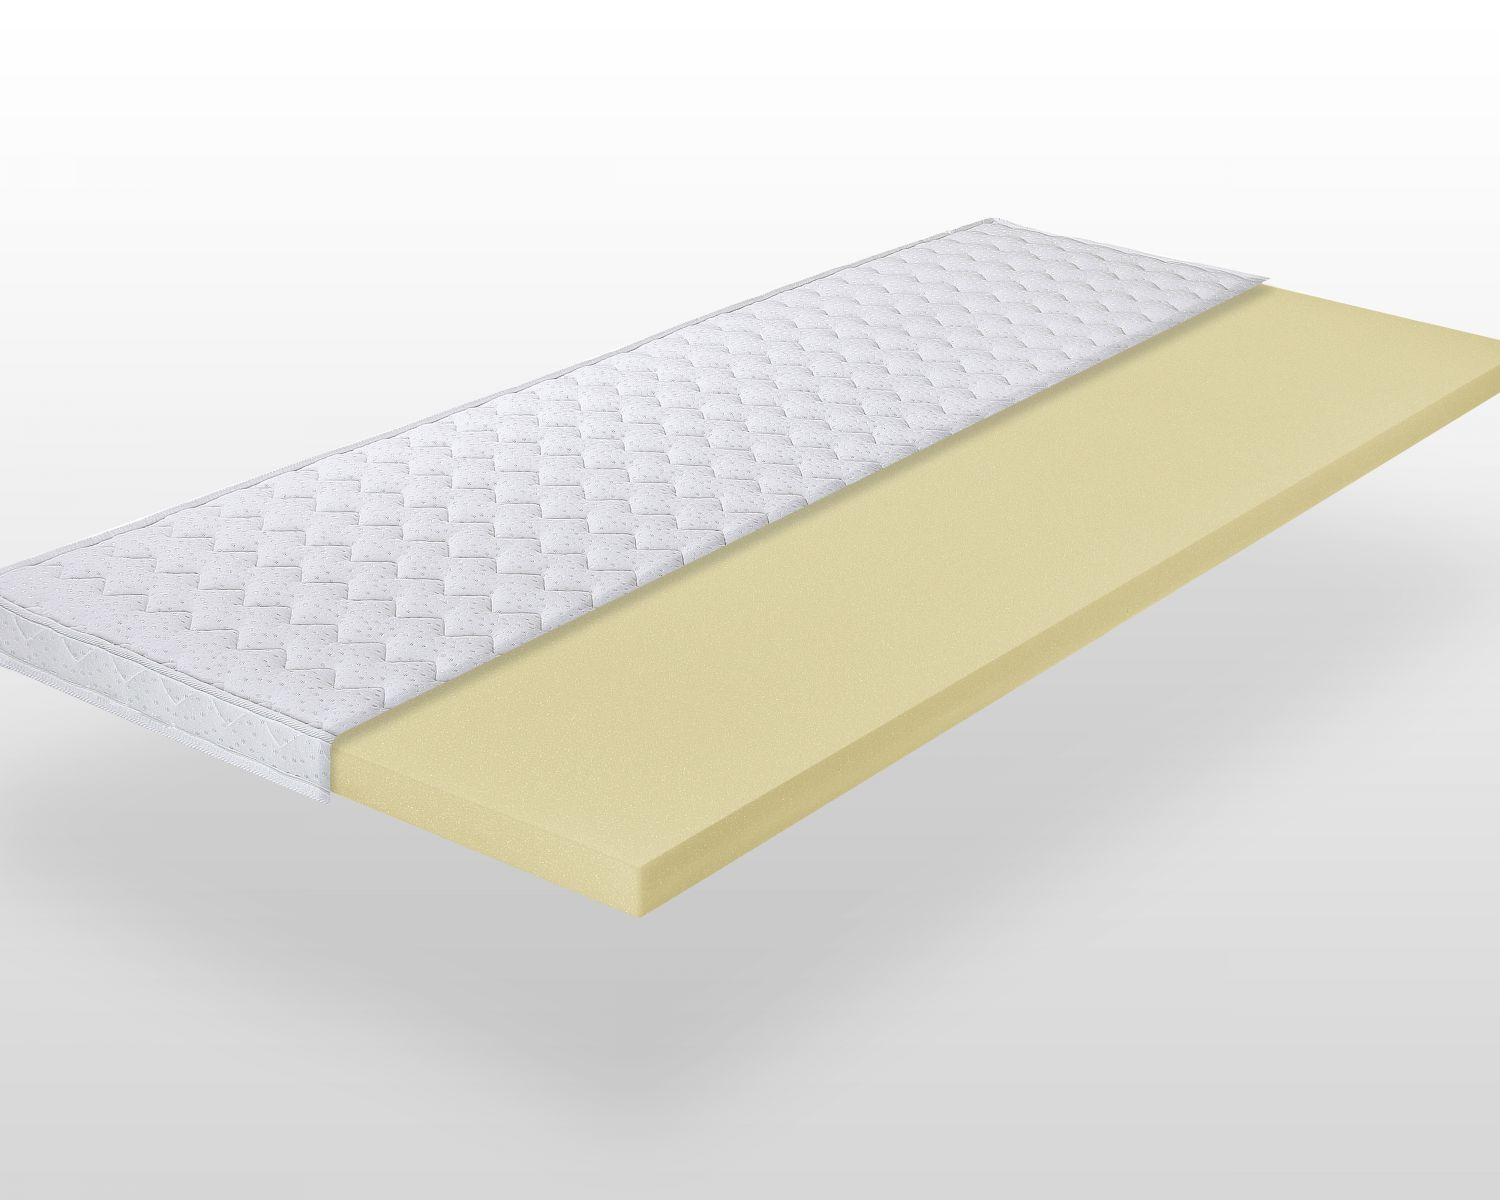 Topper Kaufen Winkle Boxspring Visco Topper Samoa